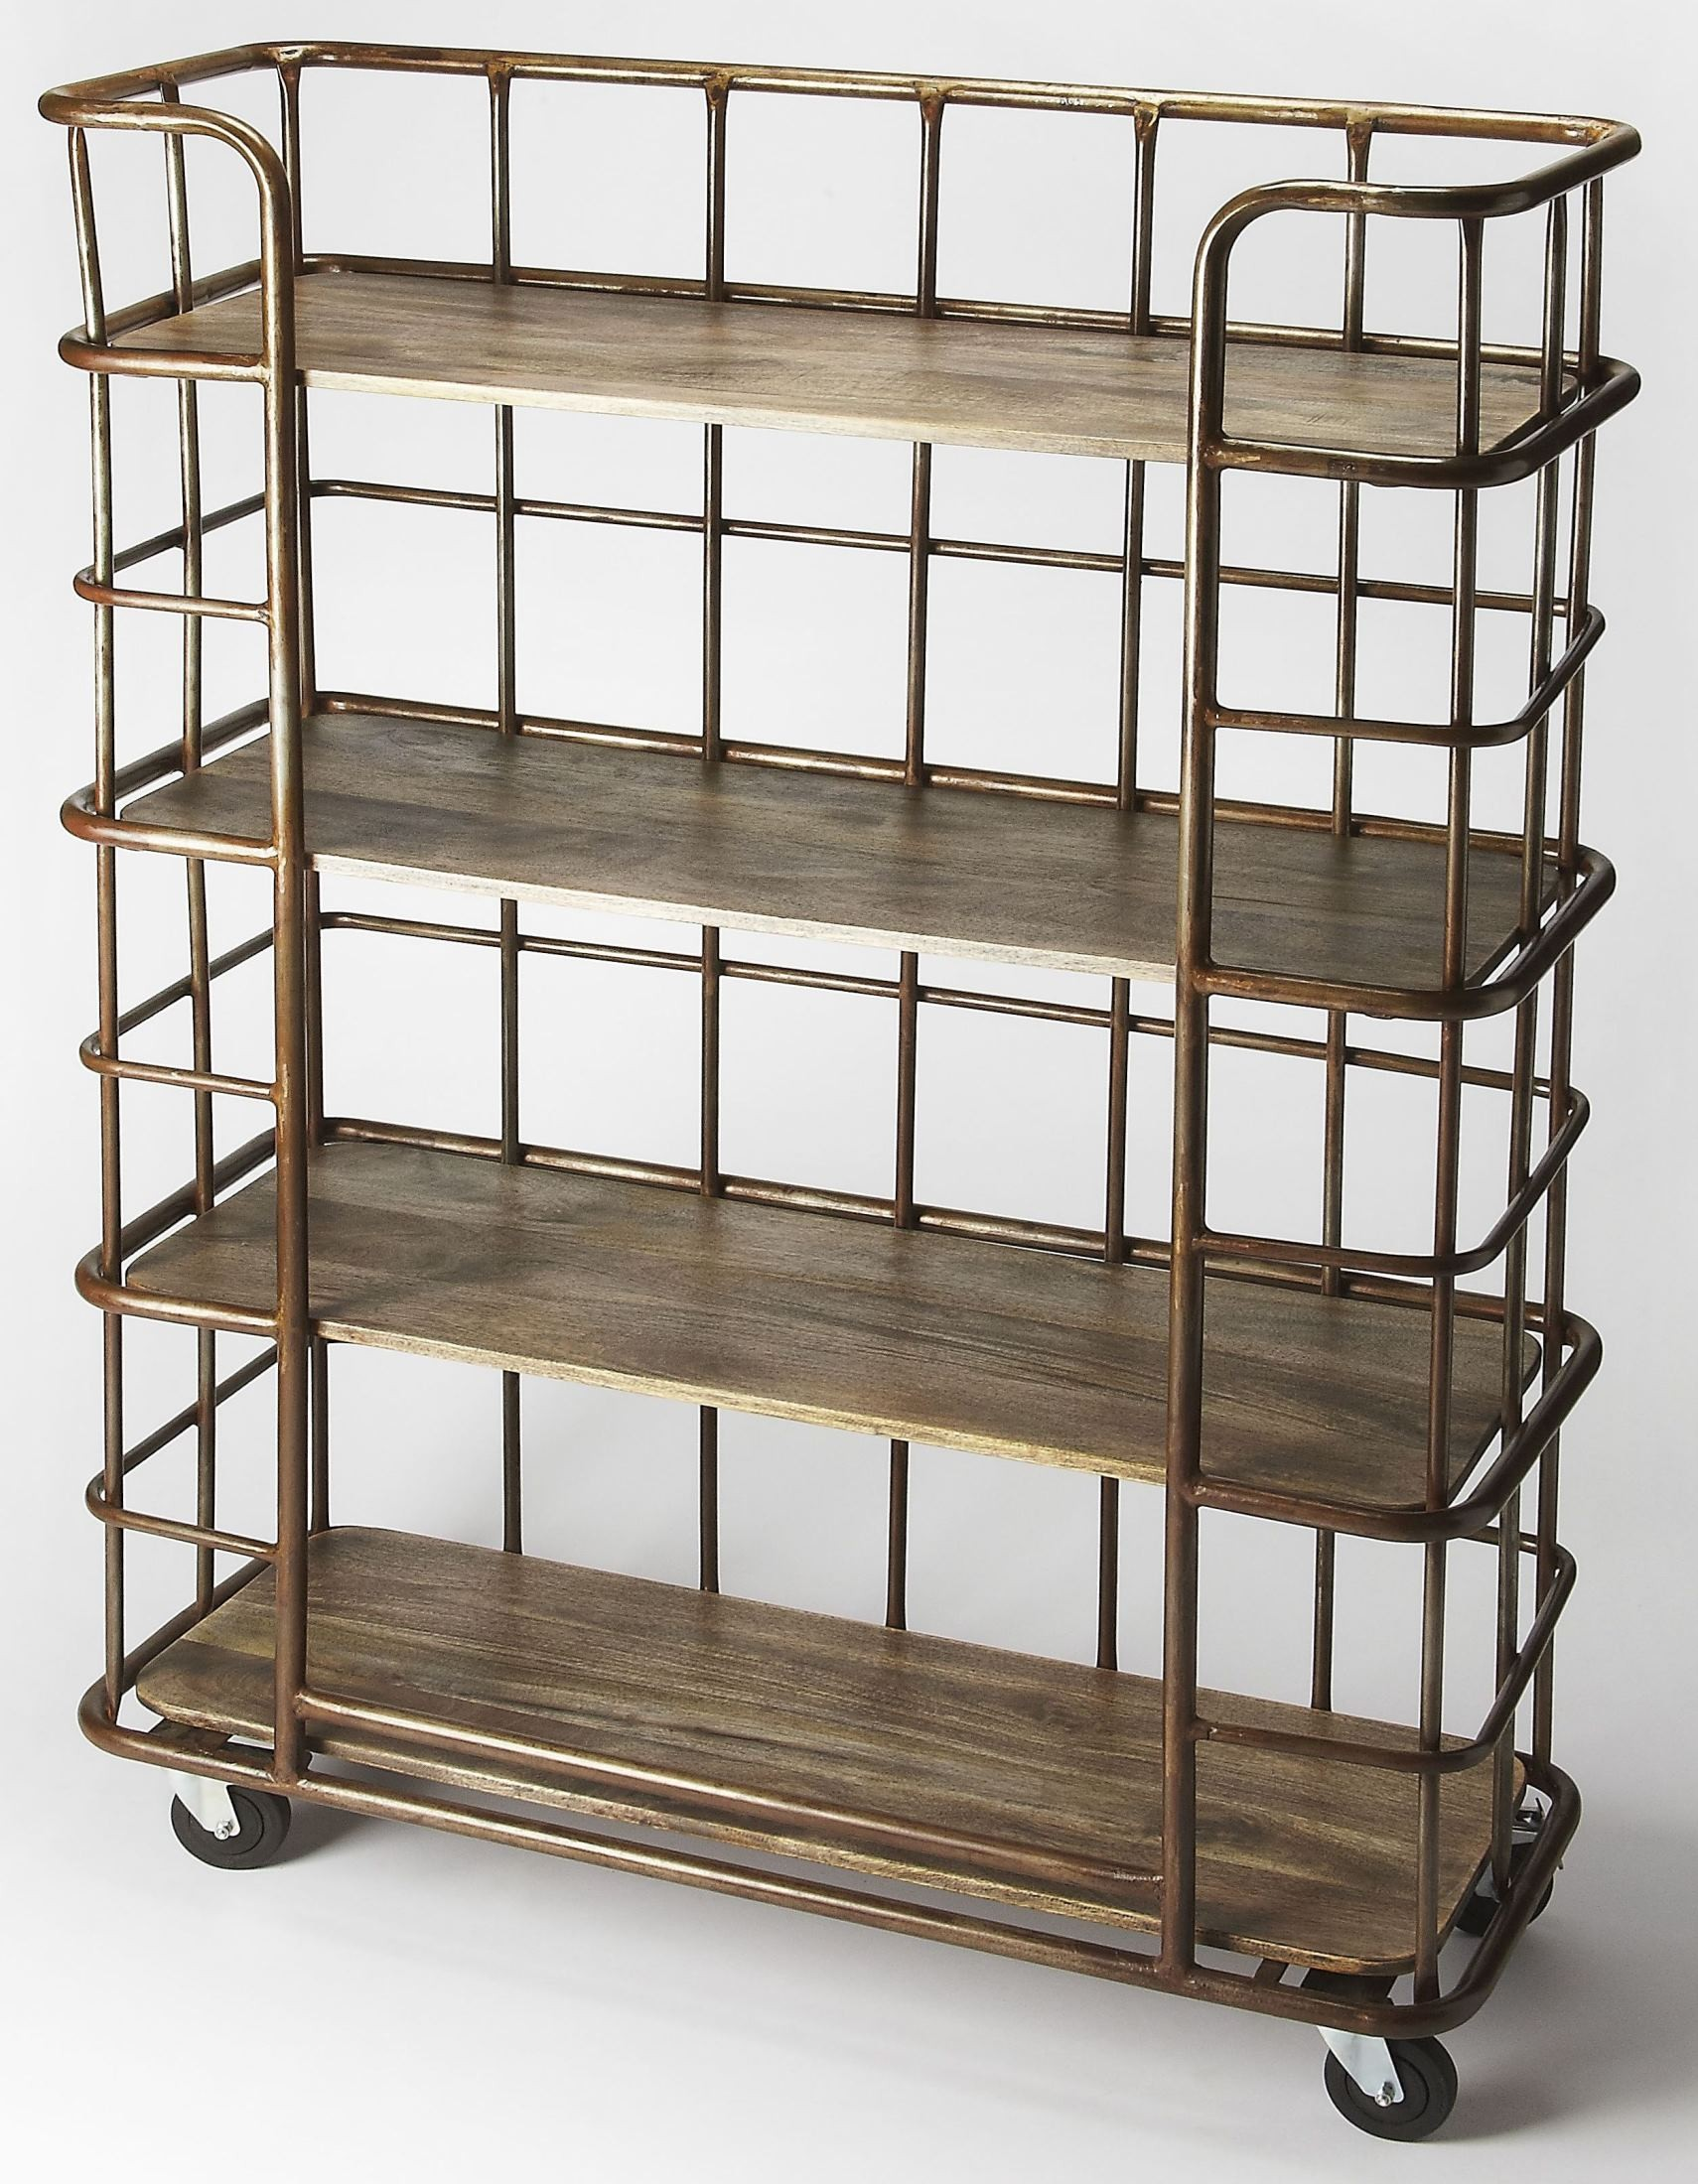 Antioch industrial chic etagere 6091330 butler for Etagere campagne chic